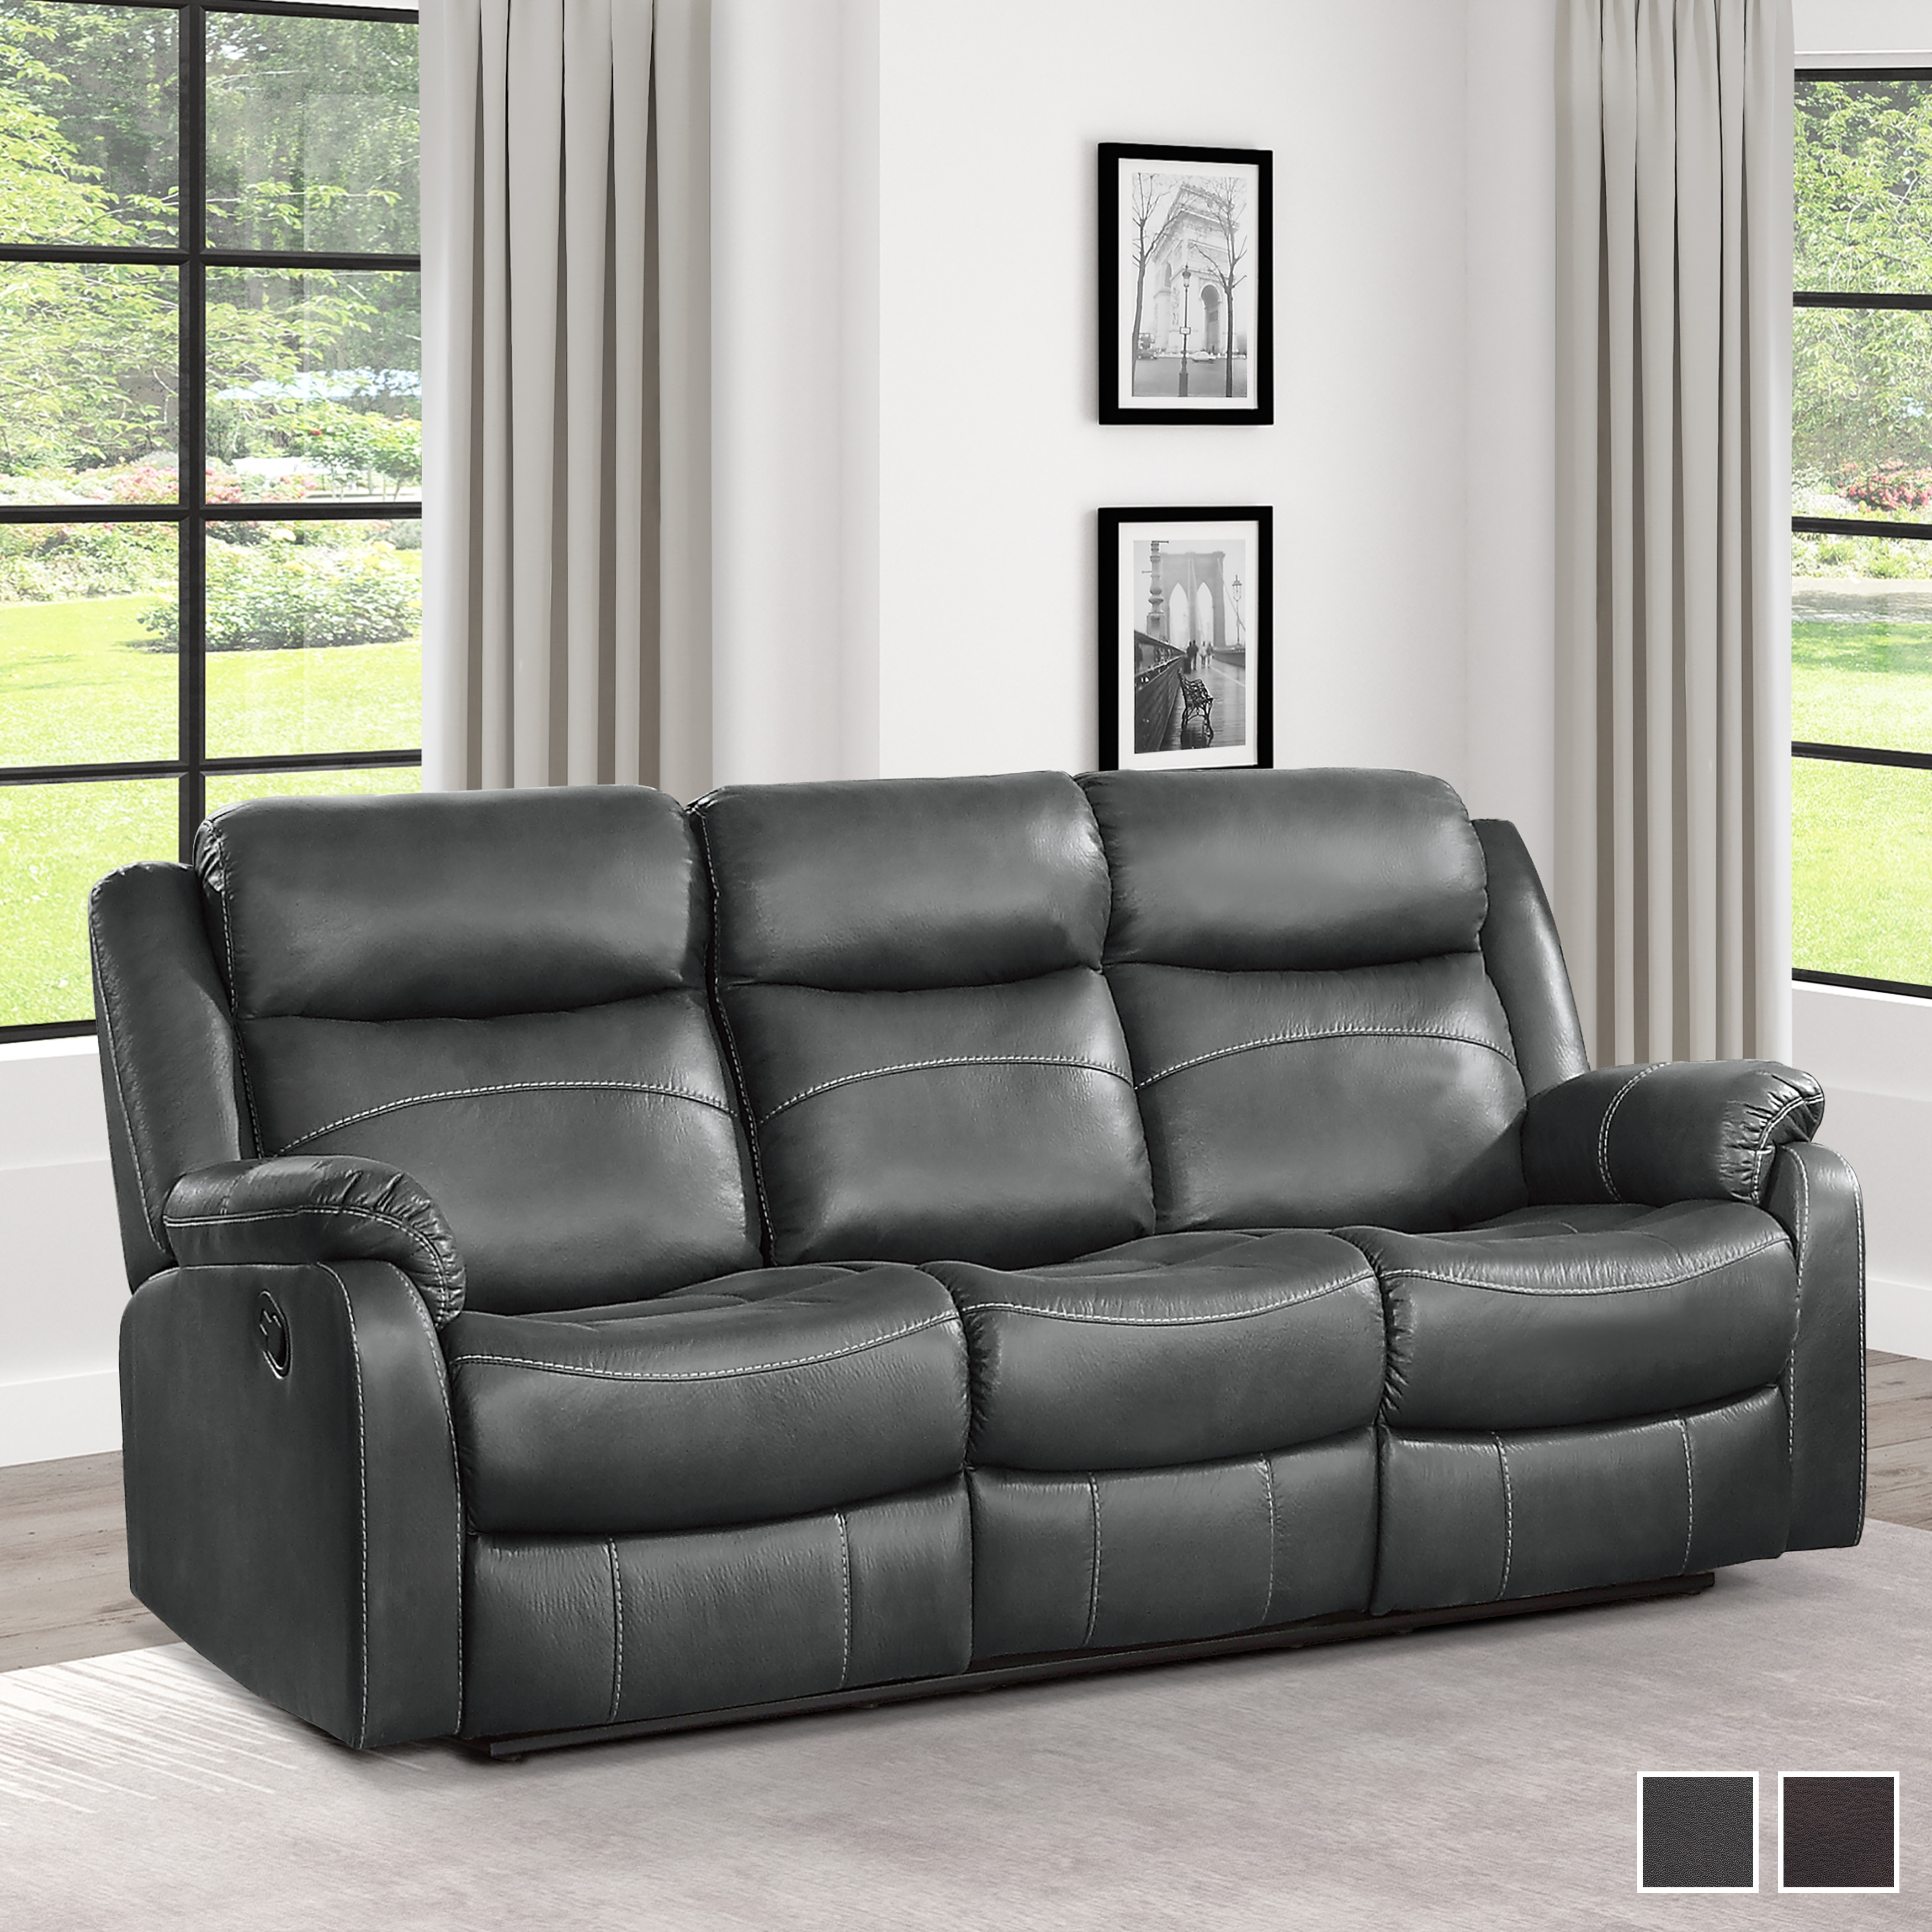 Picture of: Shop Soho Double Lay Flat Reclining Sofa With Drop Down Cup Holders Overstock 31511036